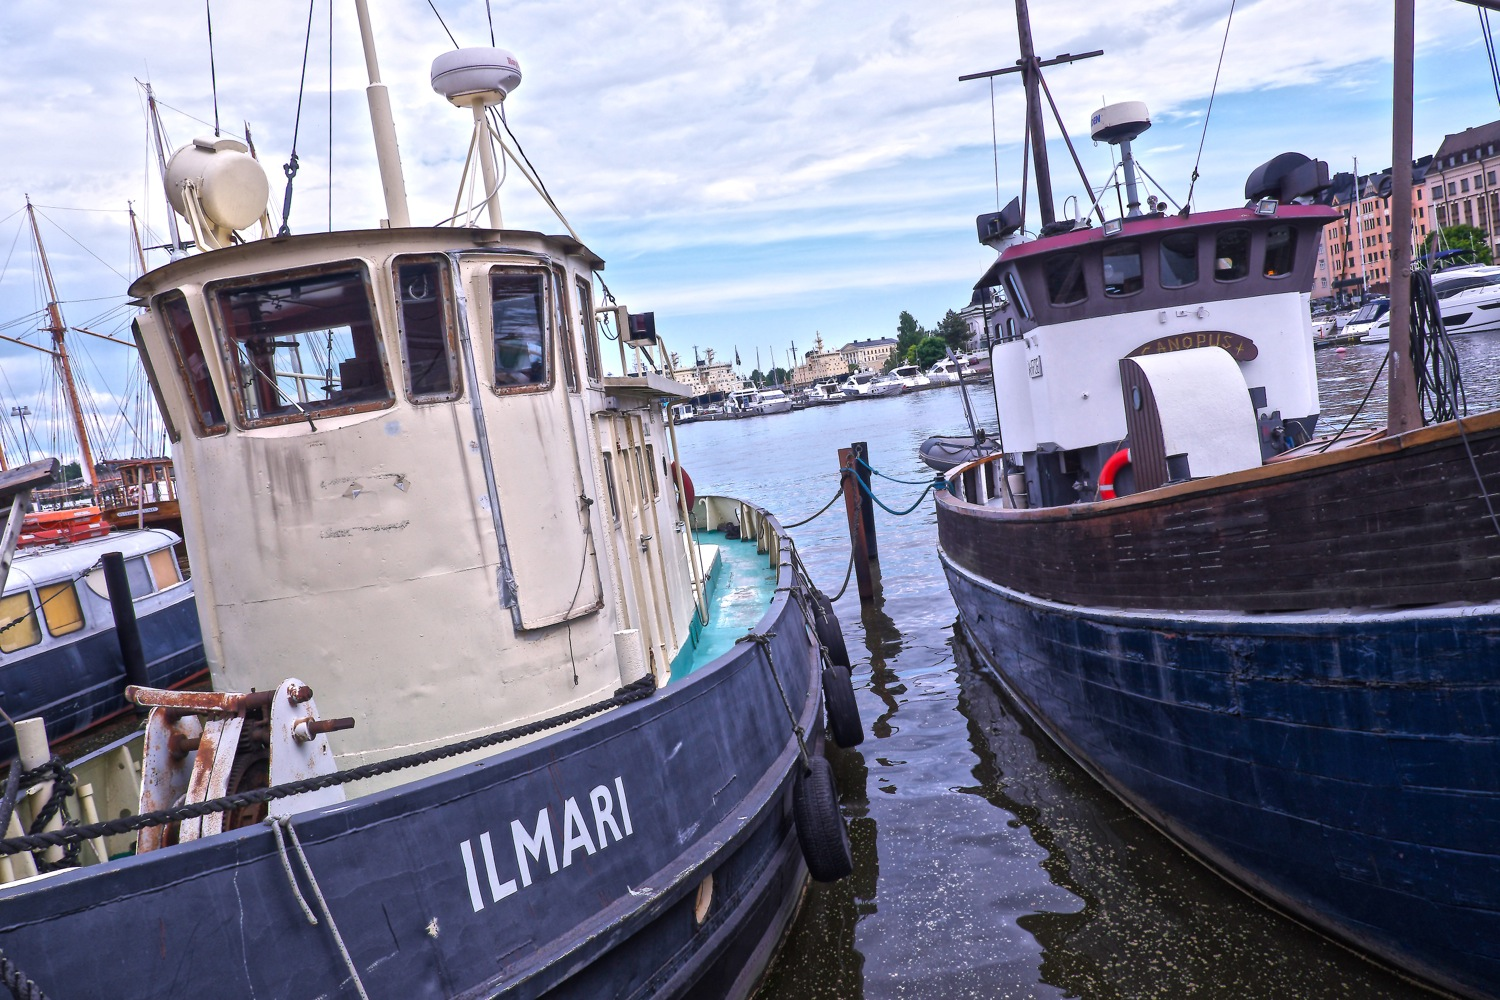 Boats moored at Helsinki city